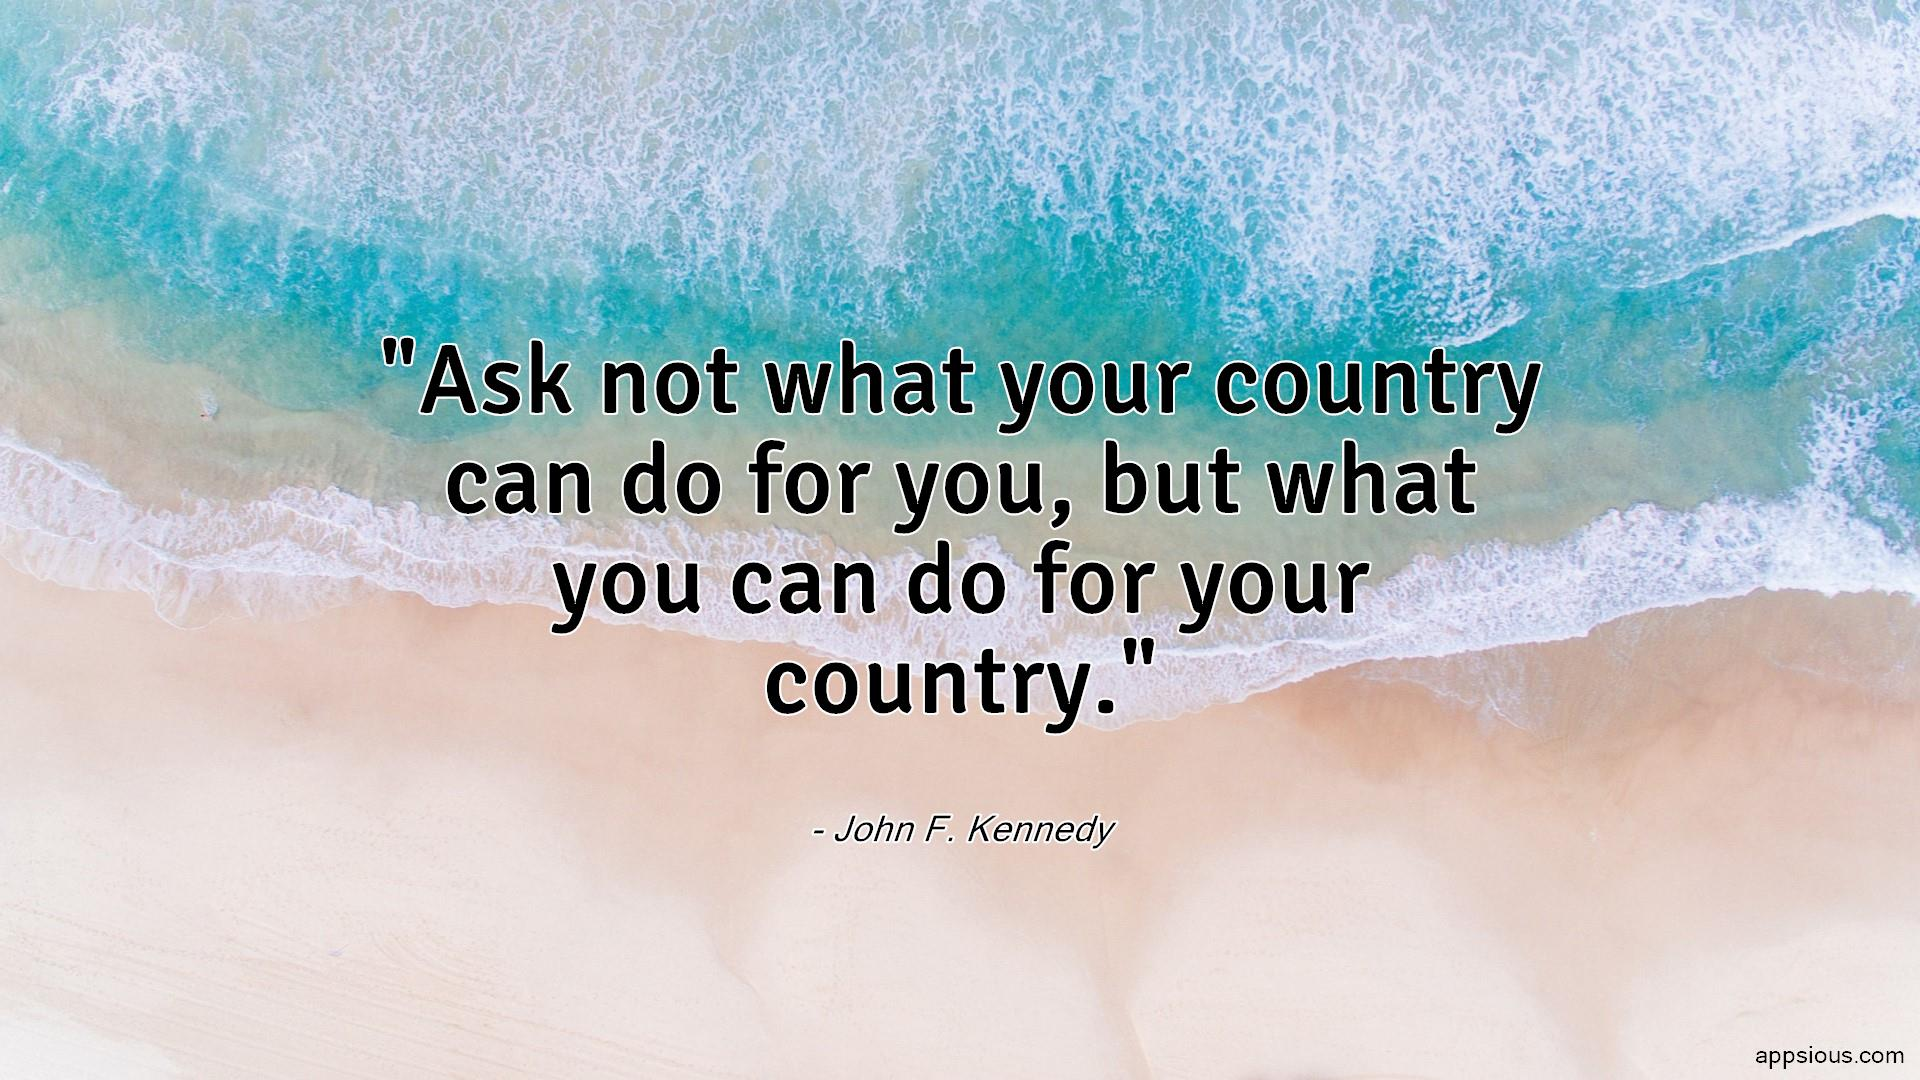 Ask not what your country can do for you, but what you can do for your country.